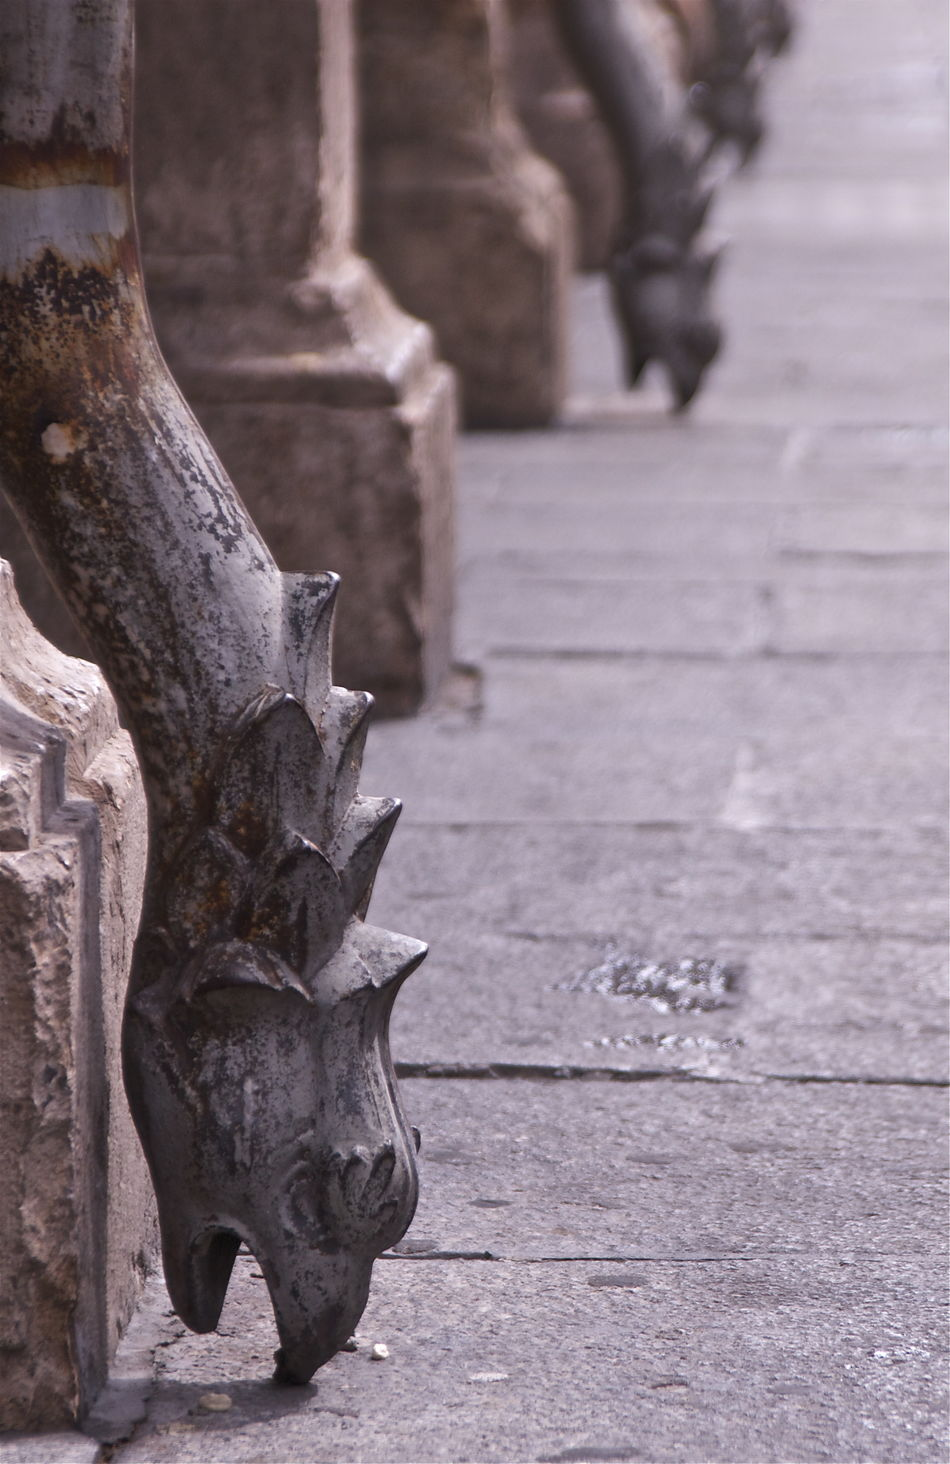 Alcalá De Henares. (Madrid) Ancient Architectural Column Architecture Built Structure Carving - Craft Product Column Day Decorations Dragons Floor Historic History Kvission Medieval Architecture Mónica Nogueira. No People Outdoors Selective Focus Stone Material Travel Destinations Waste Pipe